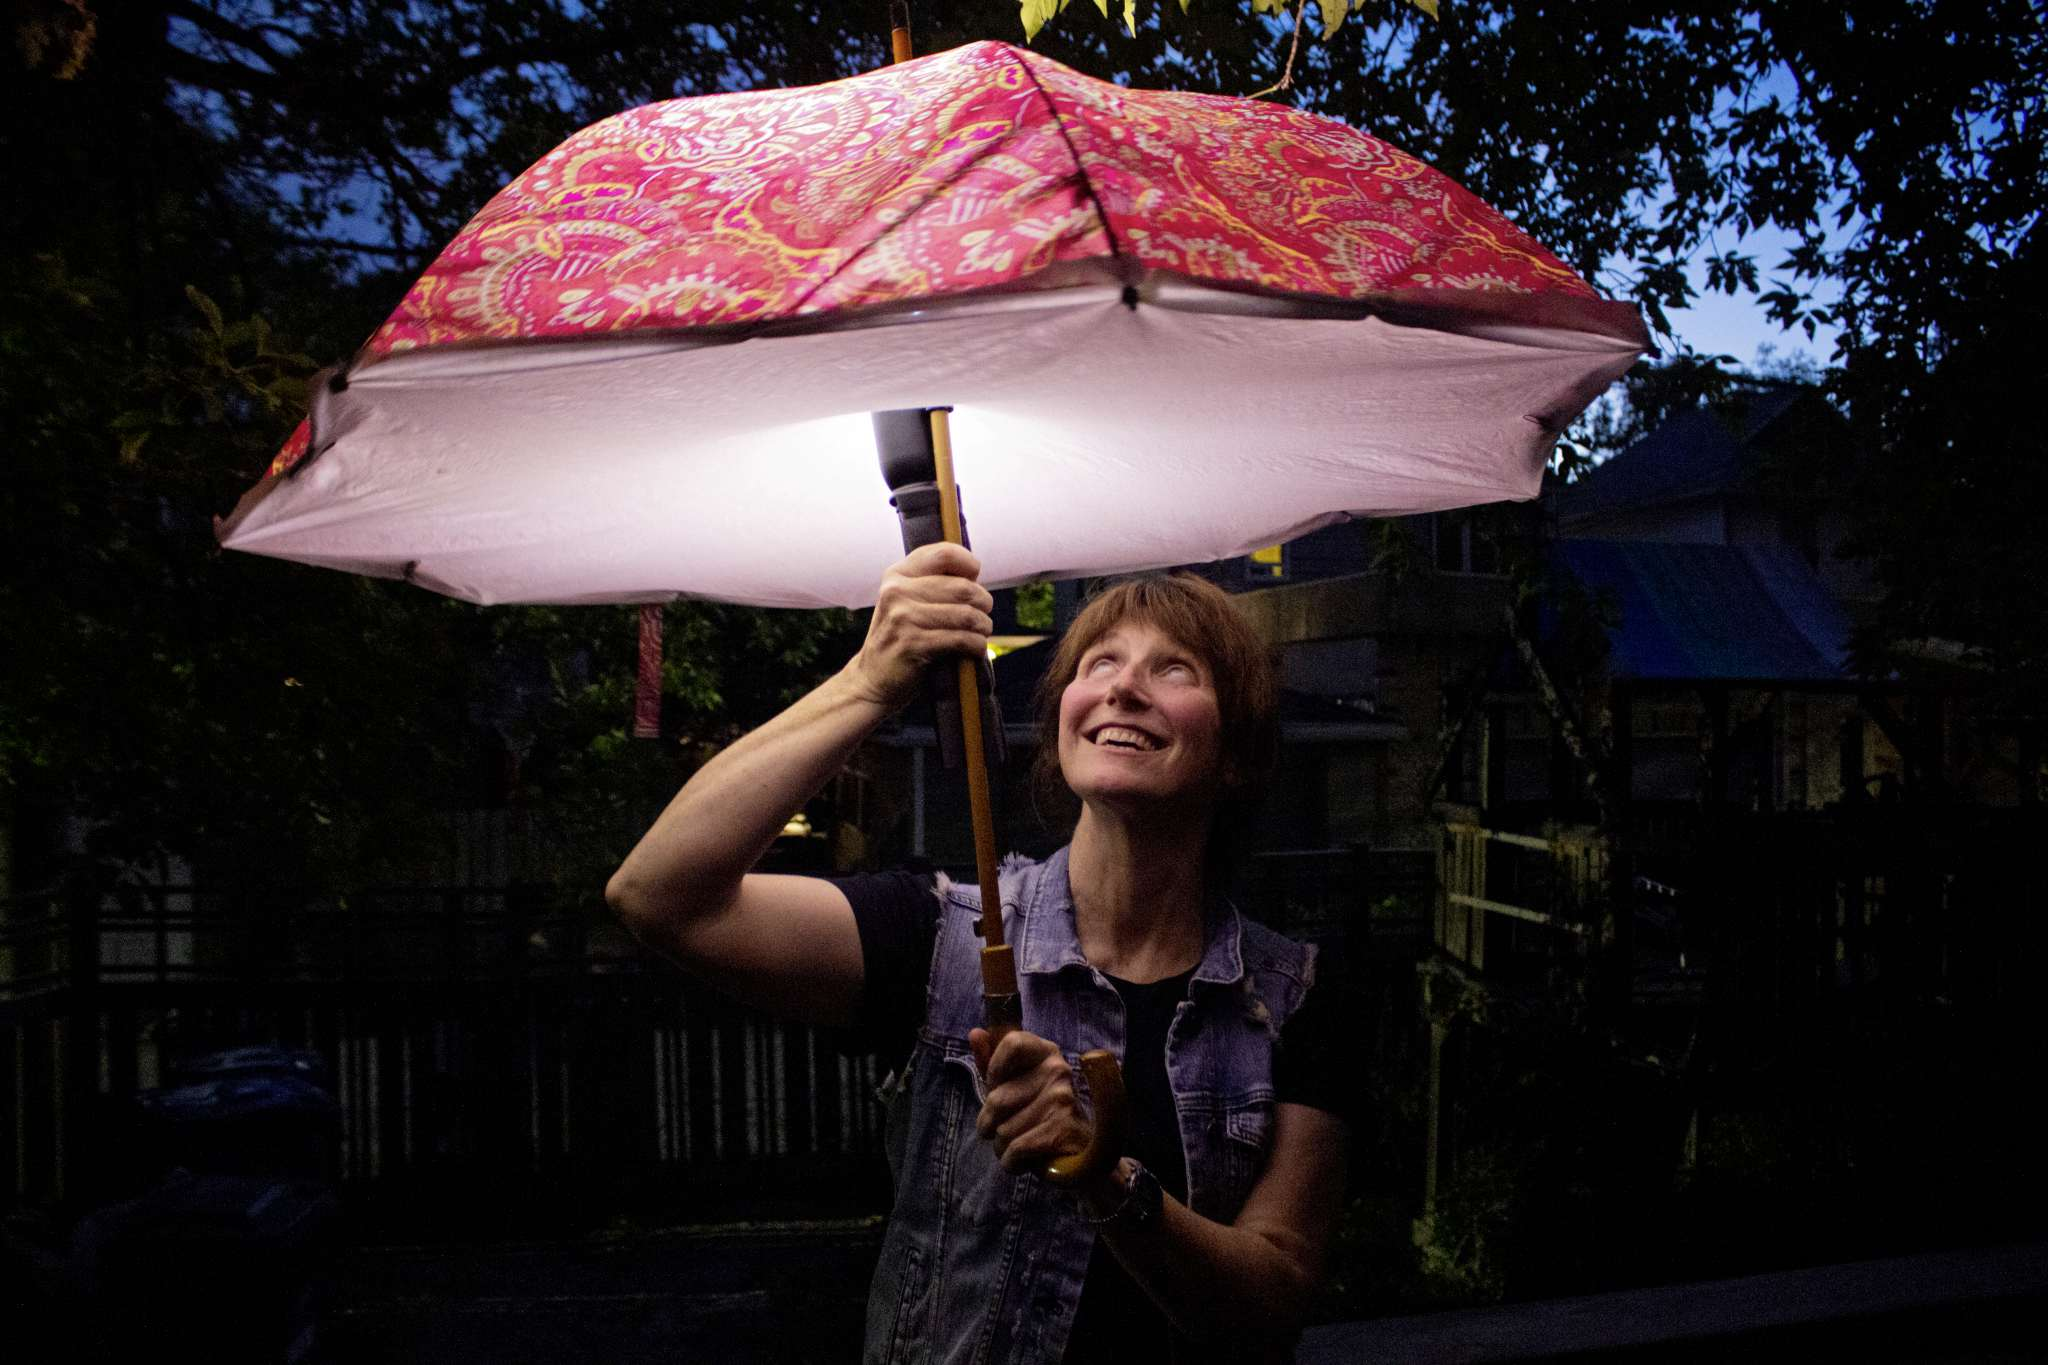 Linda Beech, holding up one of her light-up umbrellas at her Wolseley home. Beech is taking part in Nuit Blanche with her project Brolly Bright, where she plans to have five friends hold lit-up umbrellas and walk around downtown Winnipeg. The umbrellas are lit by high-powered flashlights.